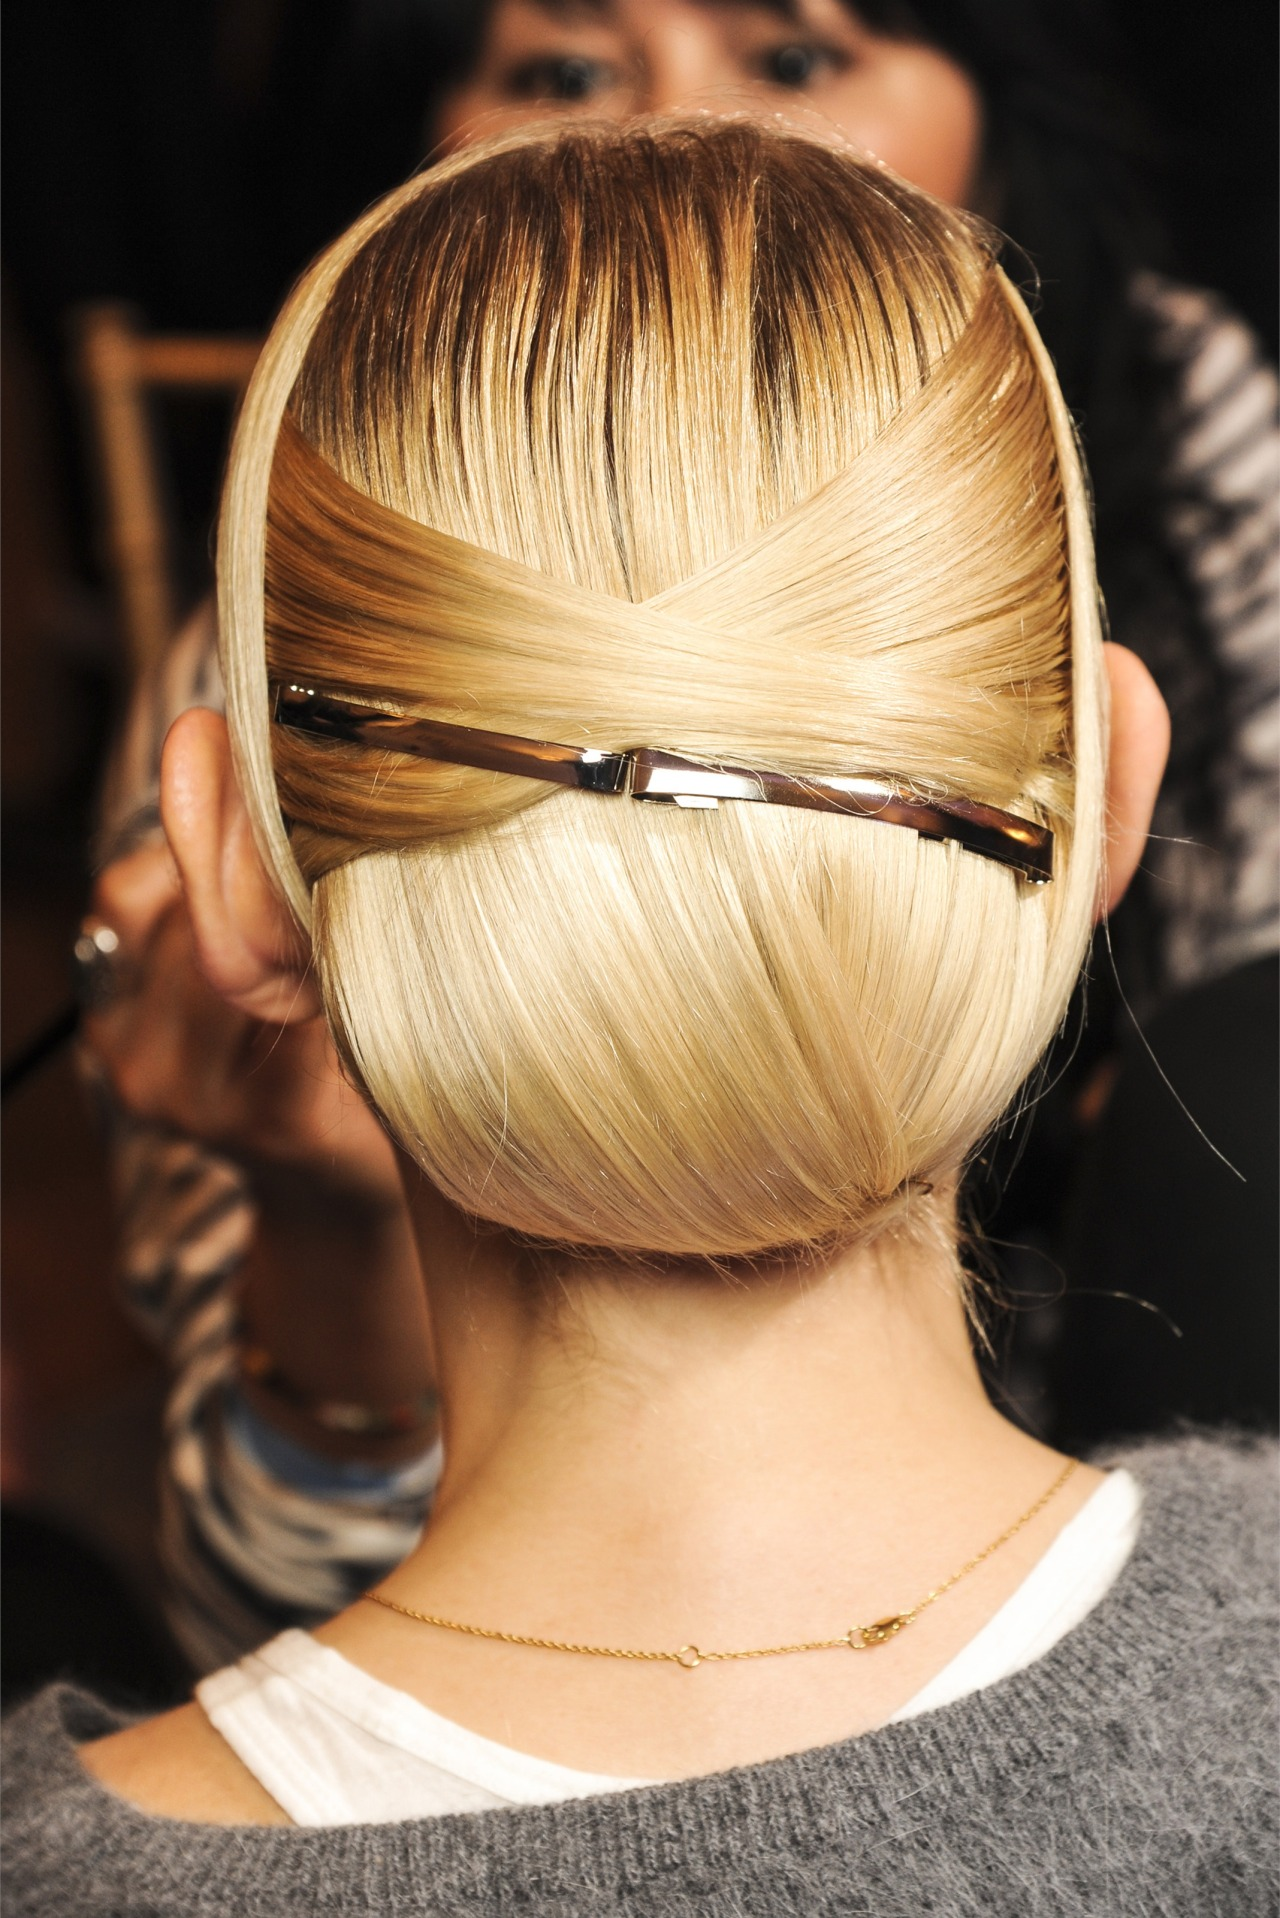 Perfect Hair @ Jason Wu F/W 13/14 nyfw Backstage